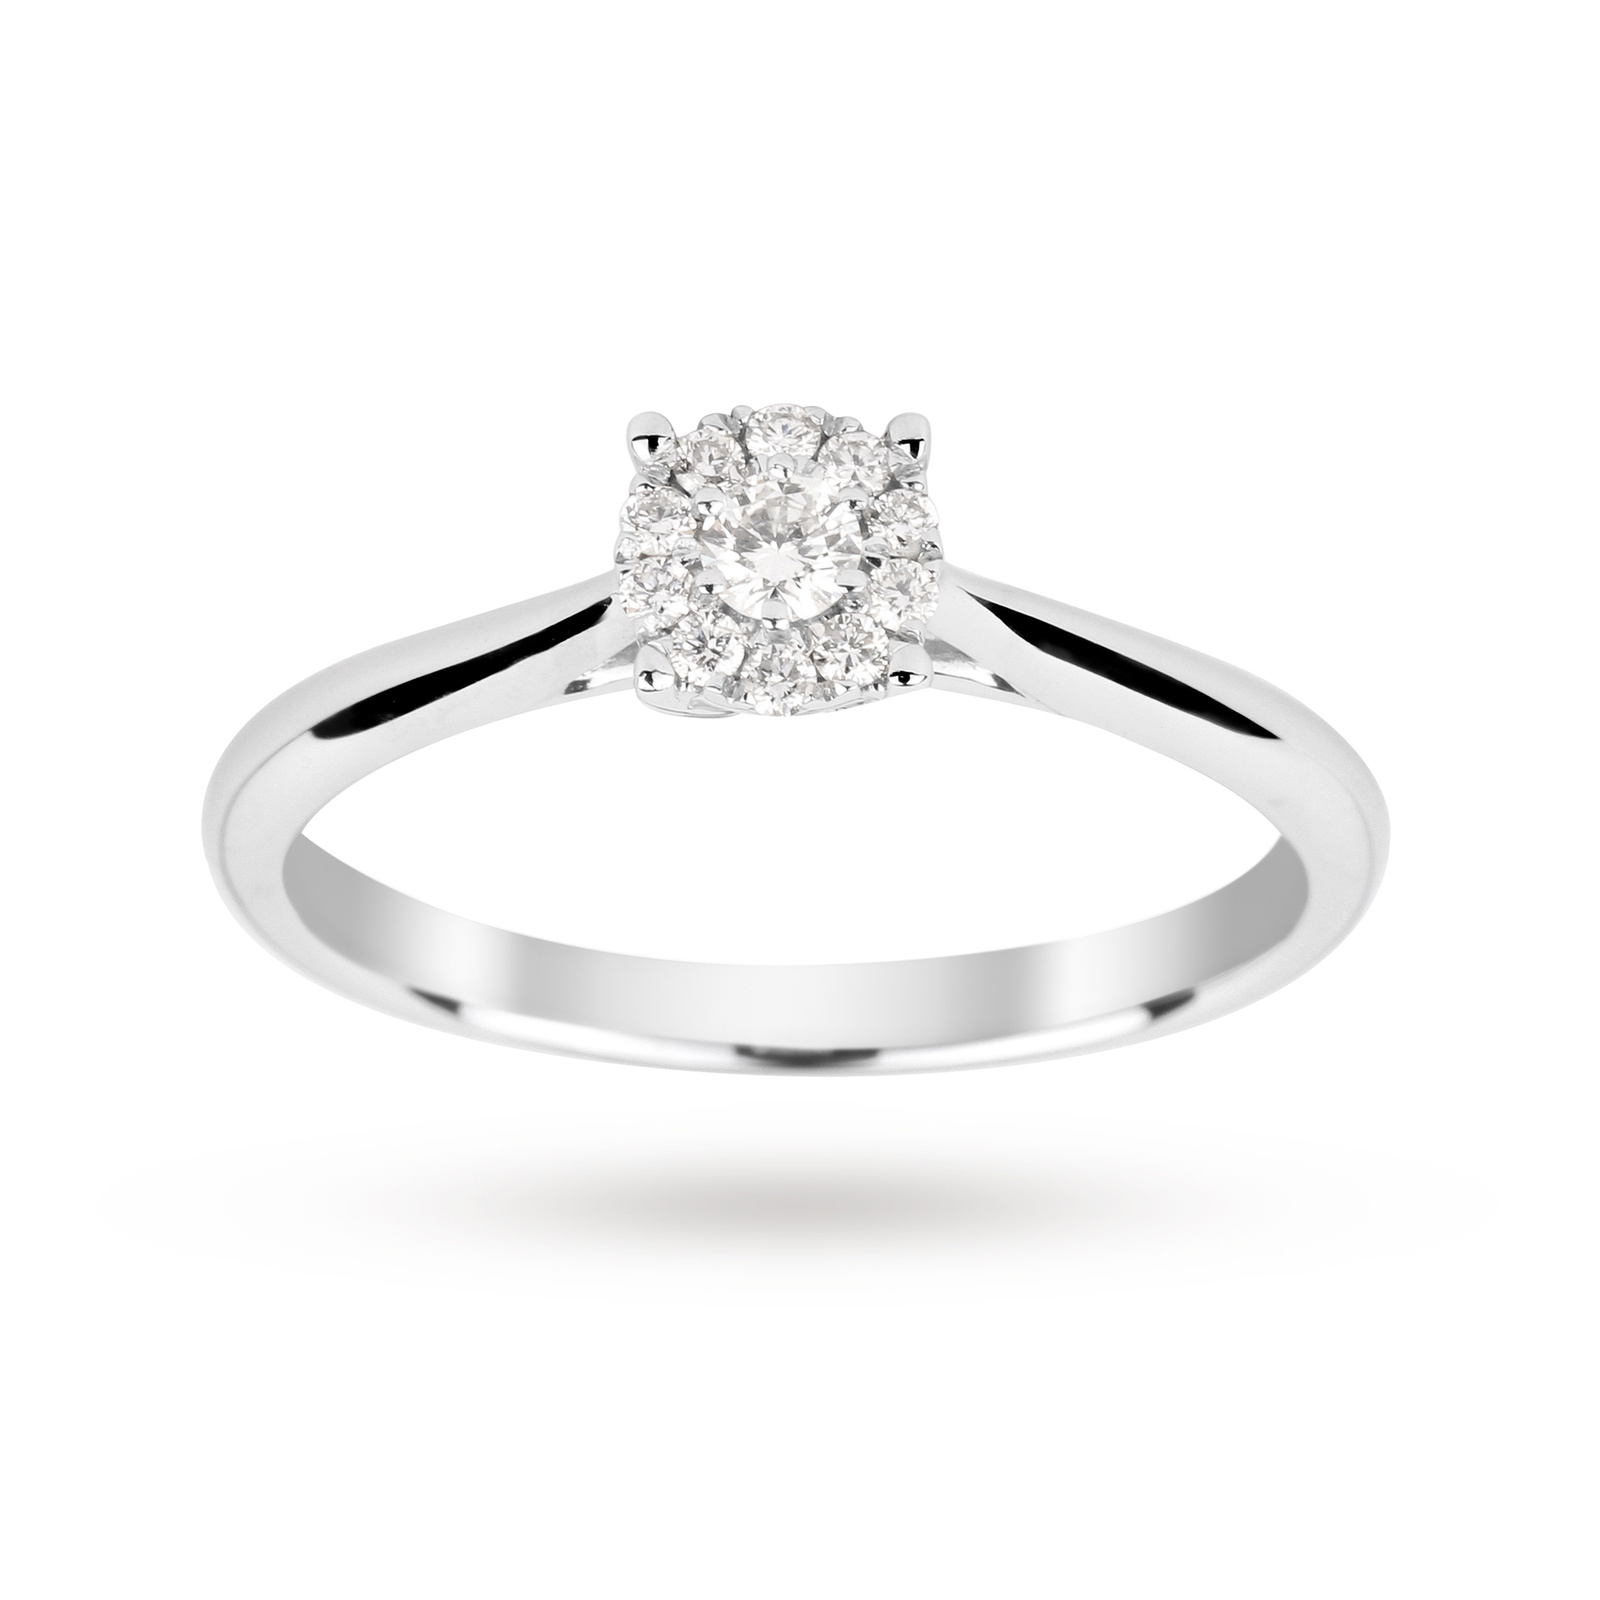 Brilliant cut 0.15 carat solitaire diamond ring in 9 carat white gold - Ring size J.